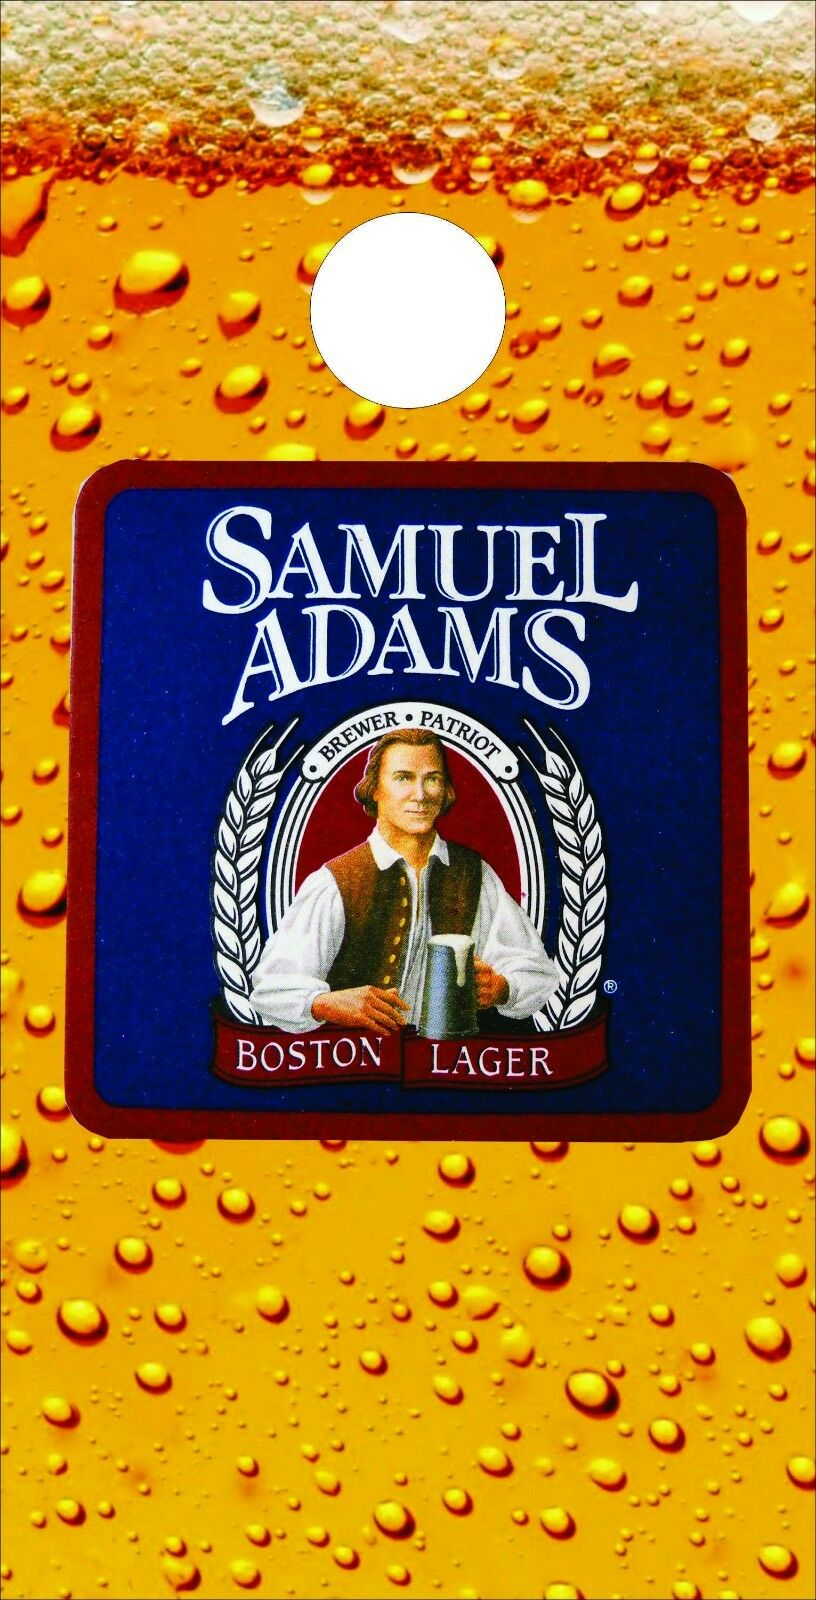 Corn Hole Graphic - Samuel  Adams Beer Glass  new branded